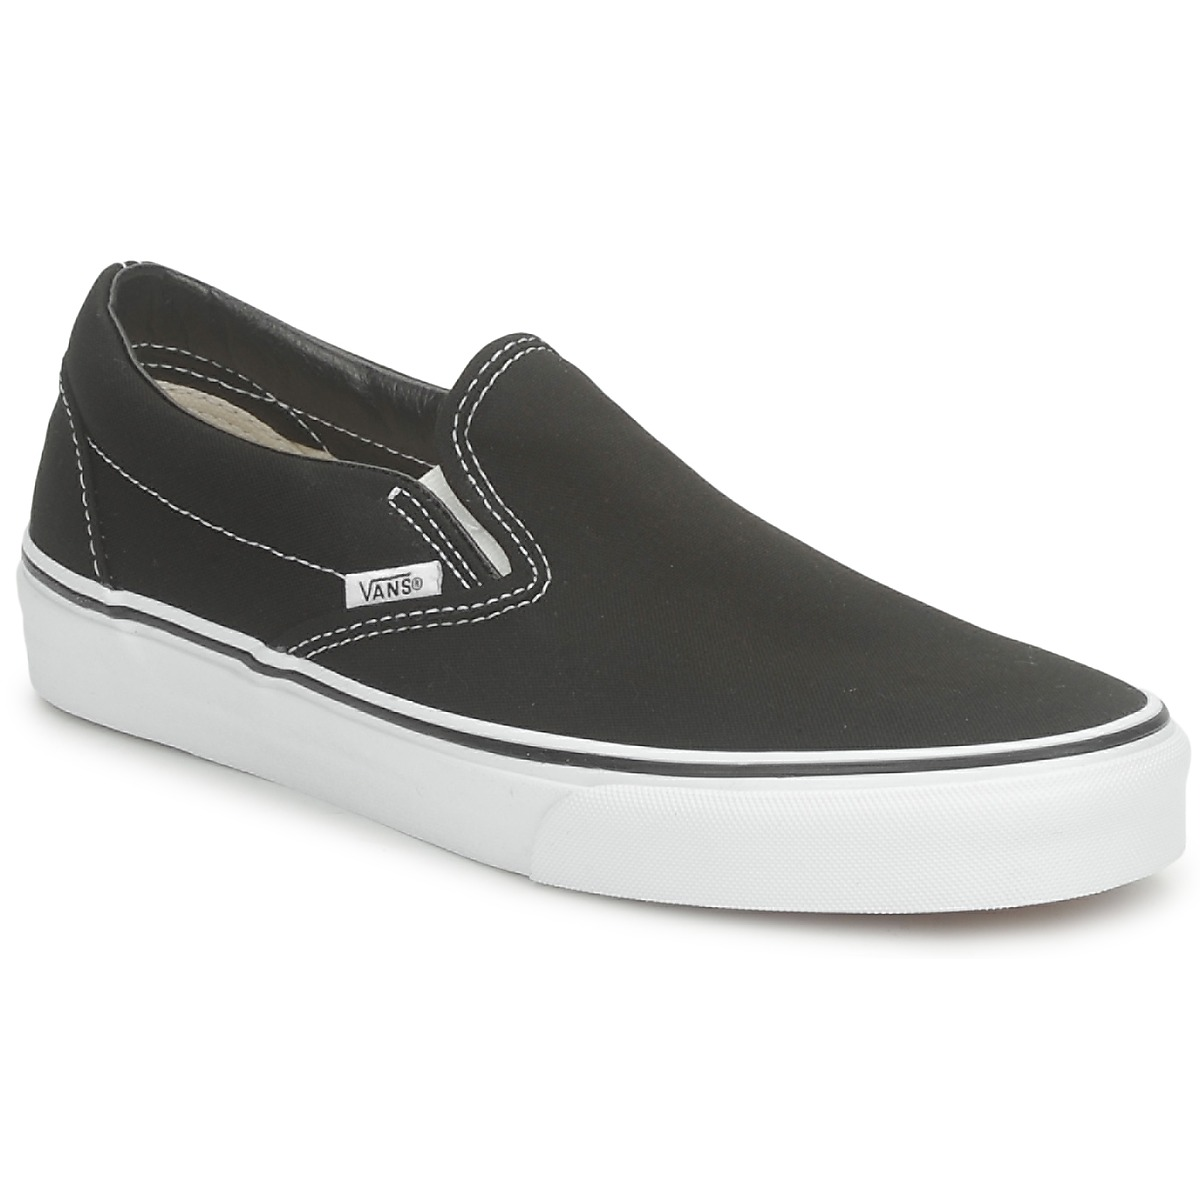 Vans Classic Slip On Sneakers - Celebrities who wear, use, or own